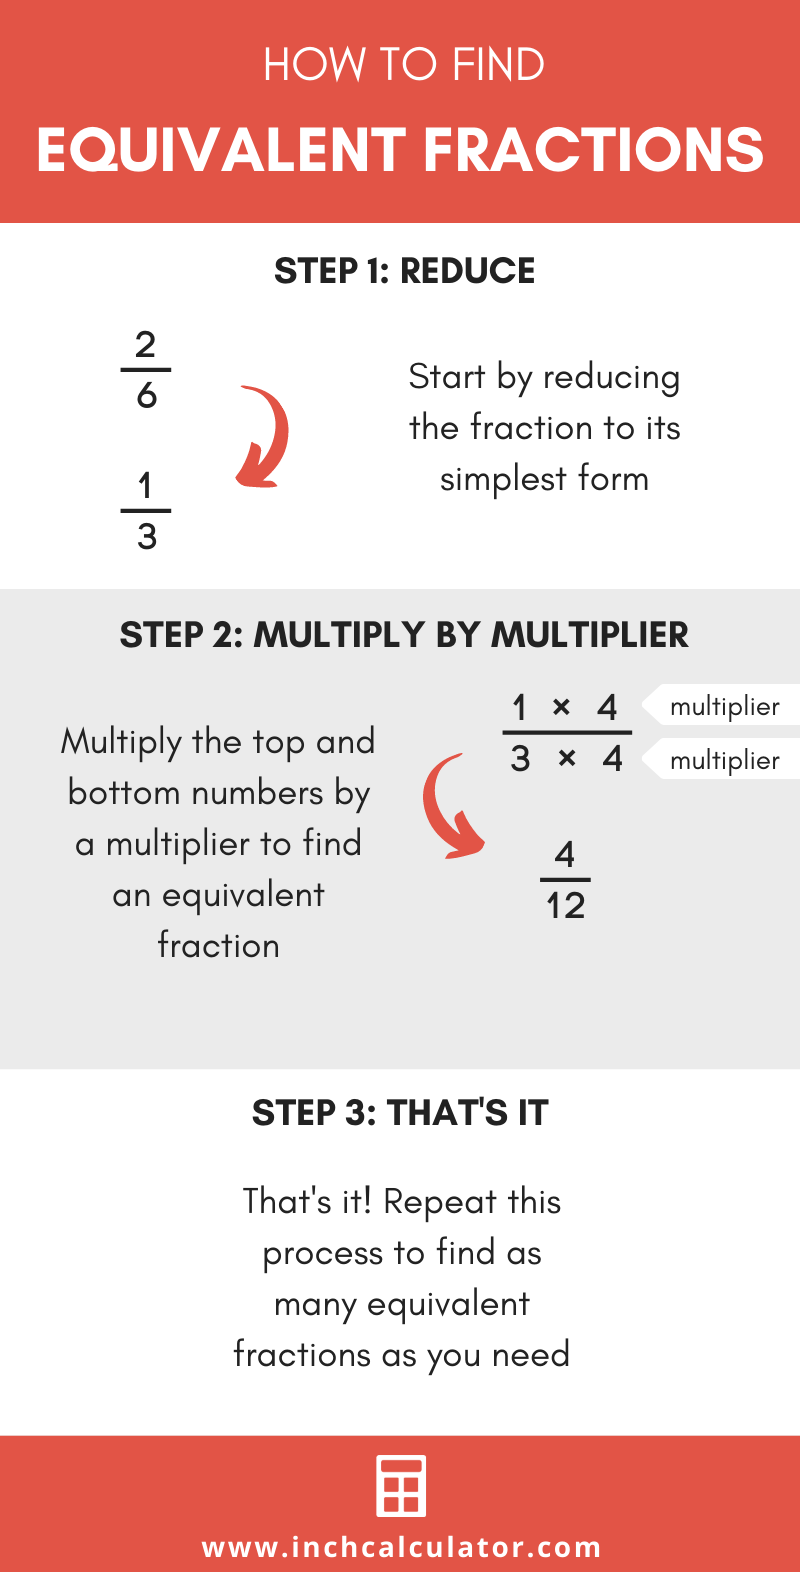 Share equivalent fractions calculator